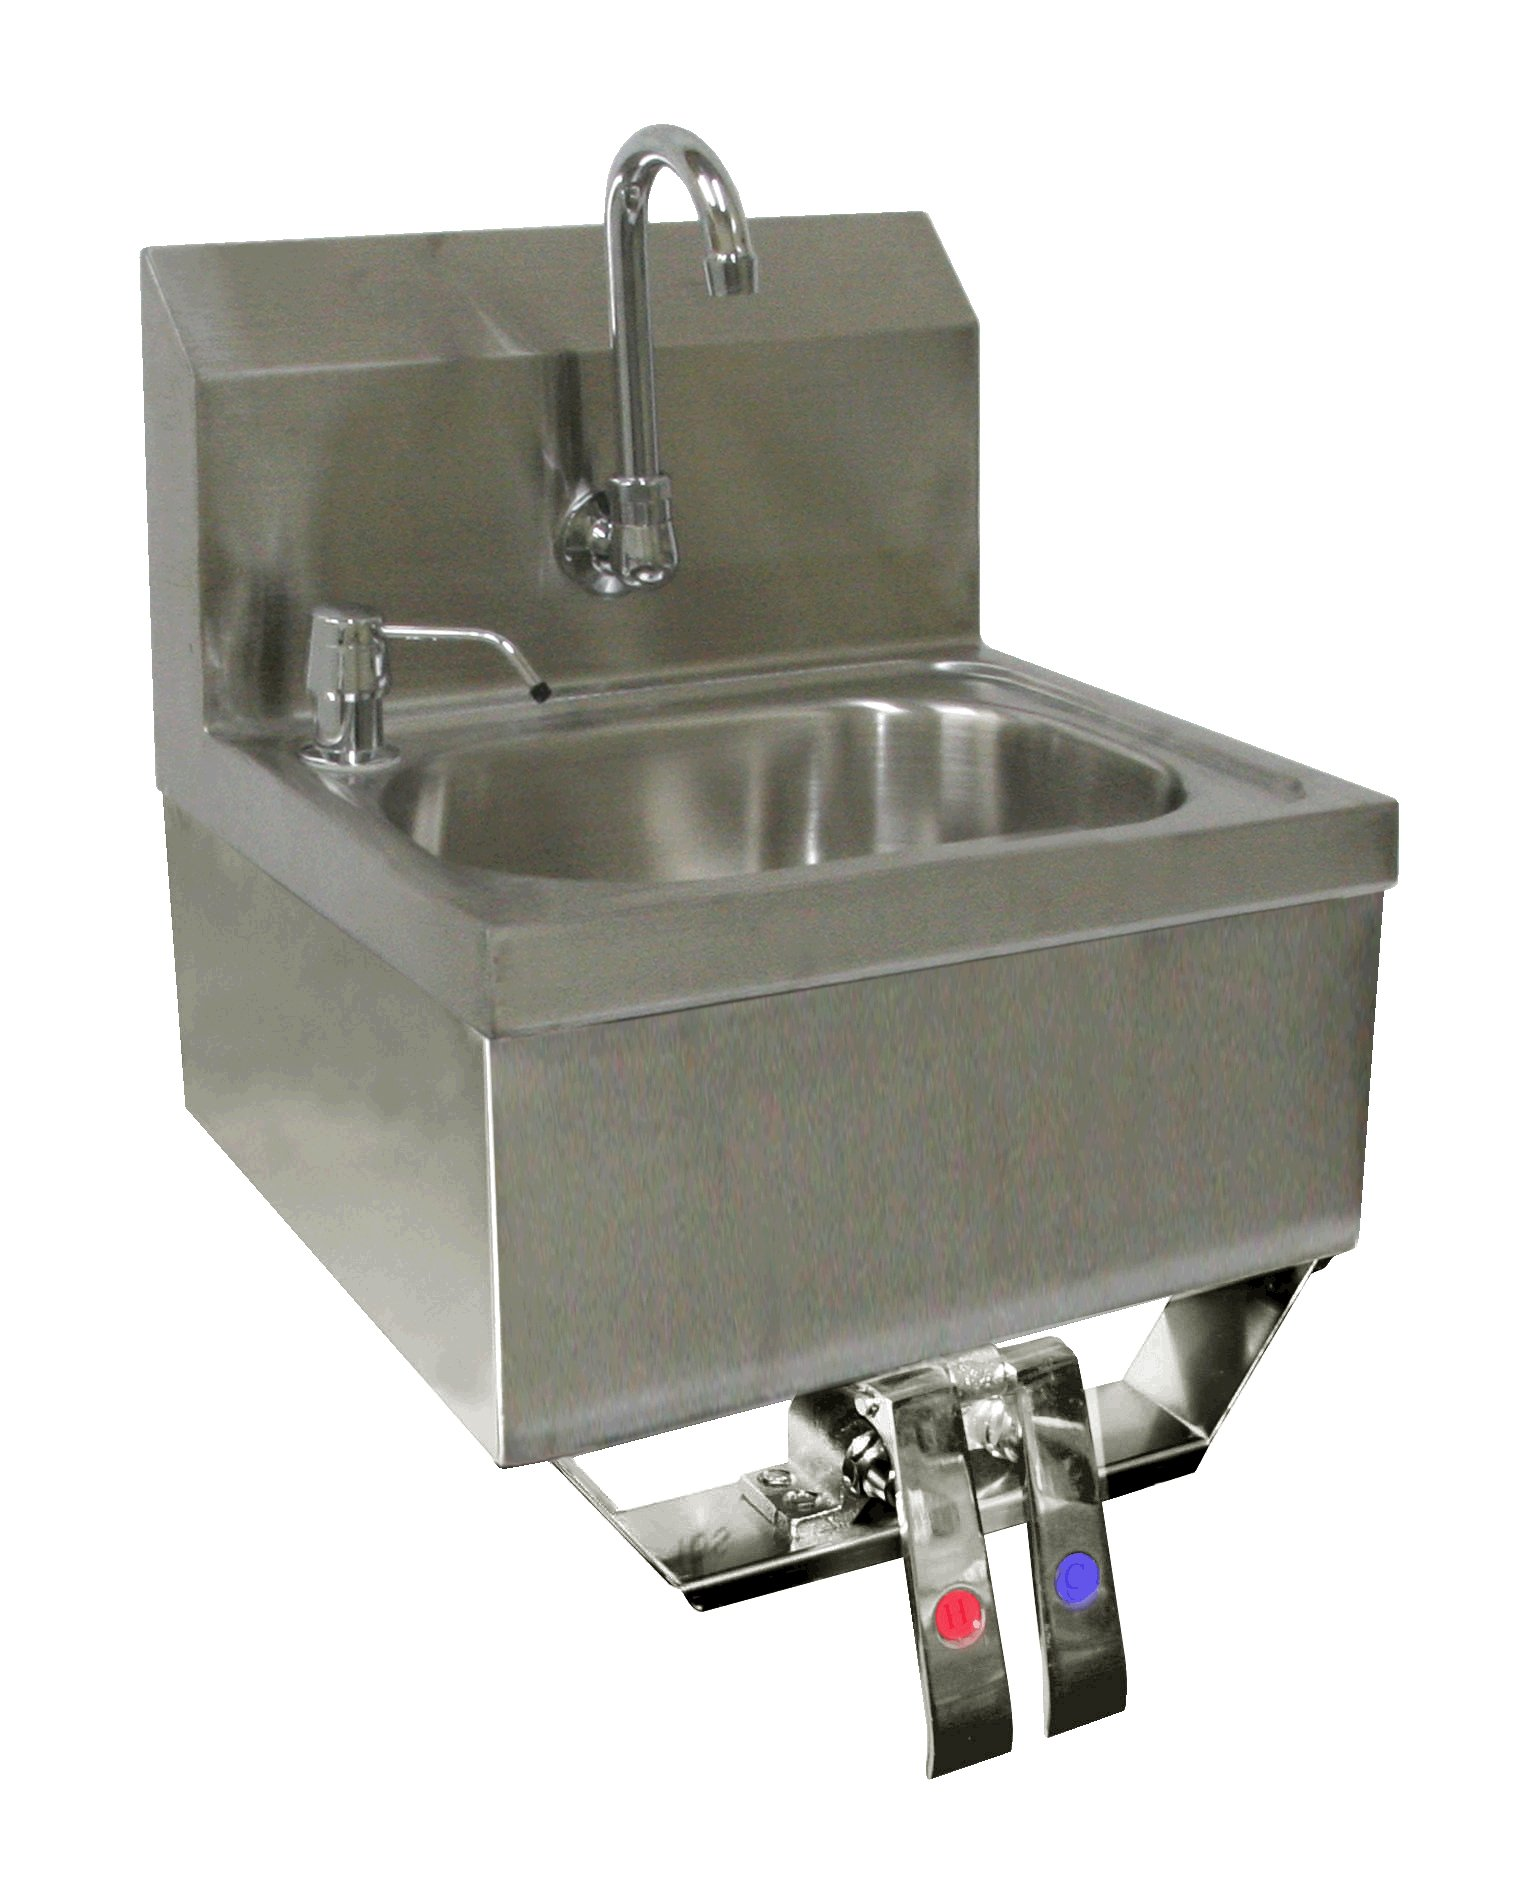 ACE Stainless Steel Wall Mount Hand Sink 16'' x 15'' with Knee Operated Valve and Lead Free Faucet